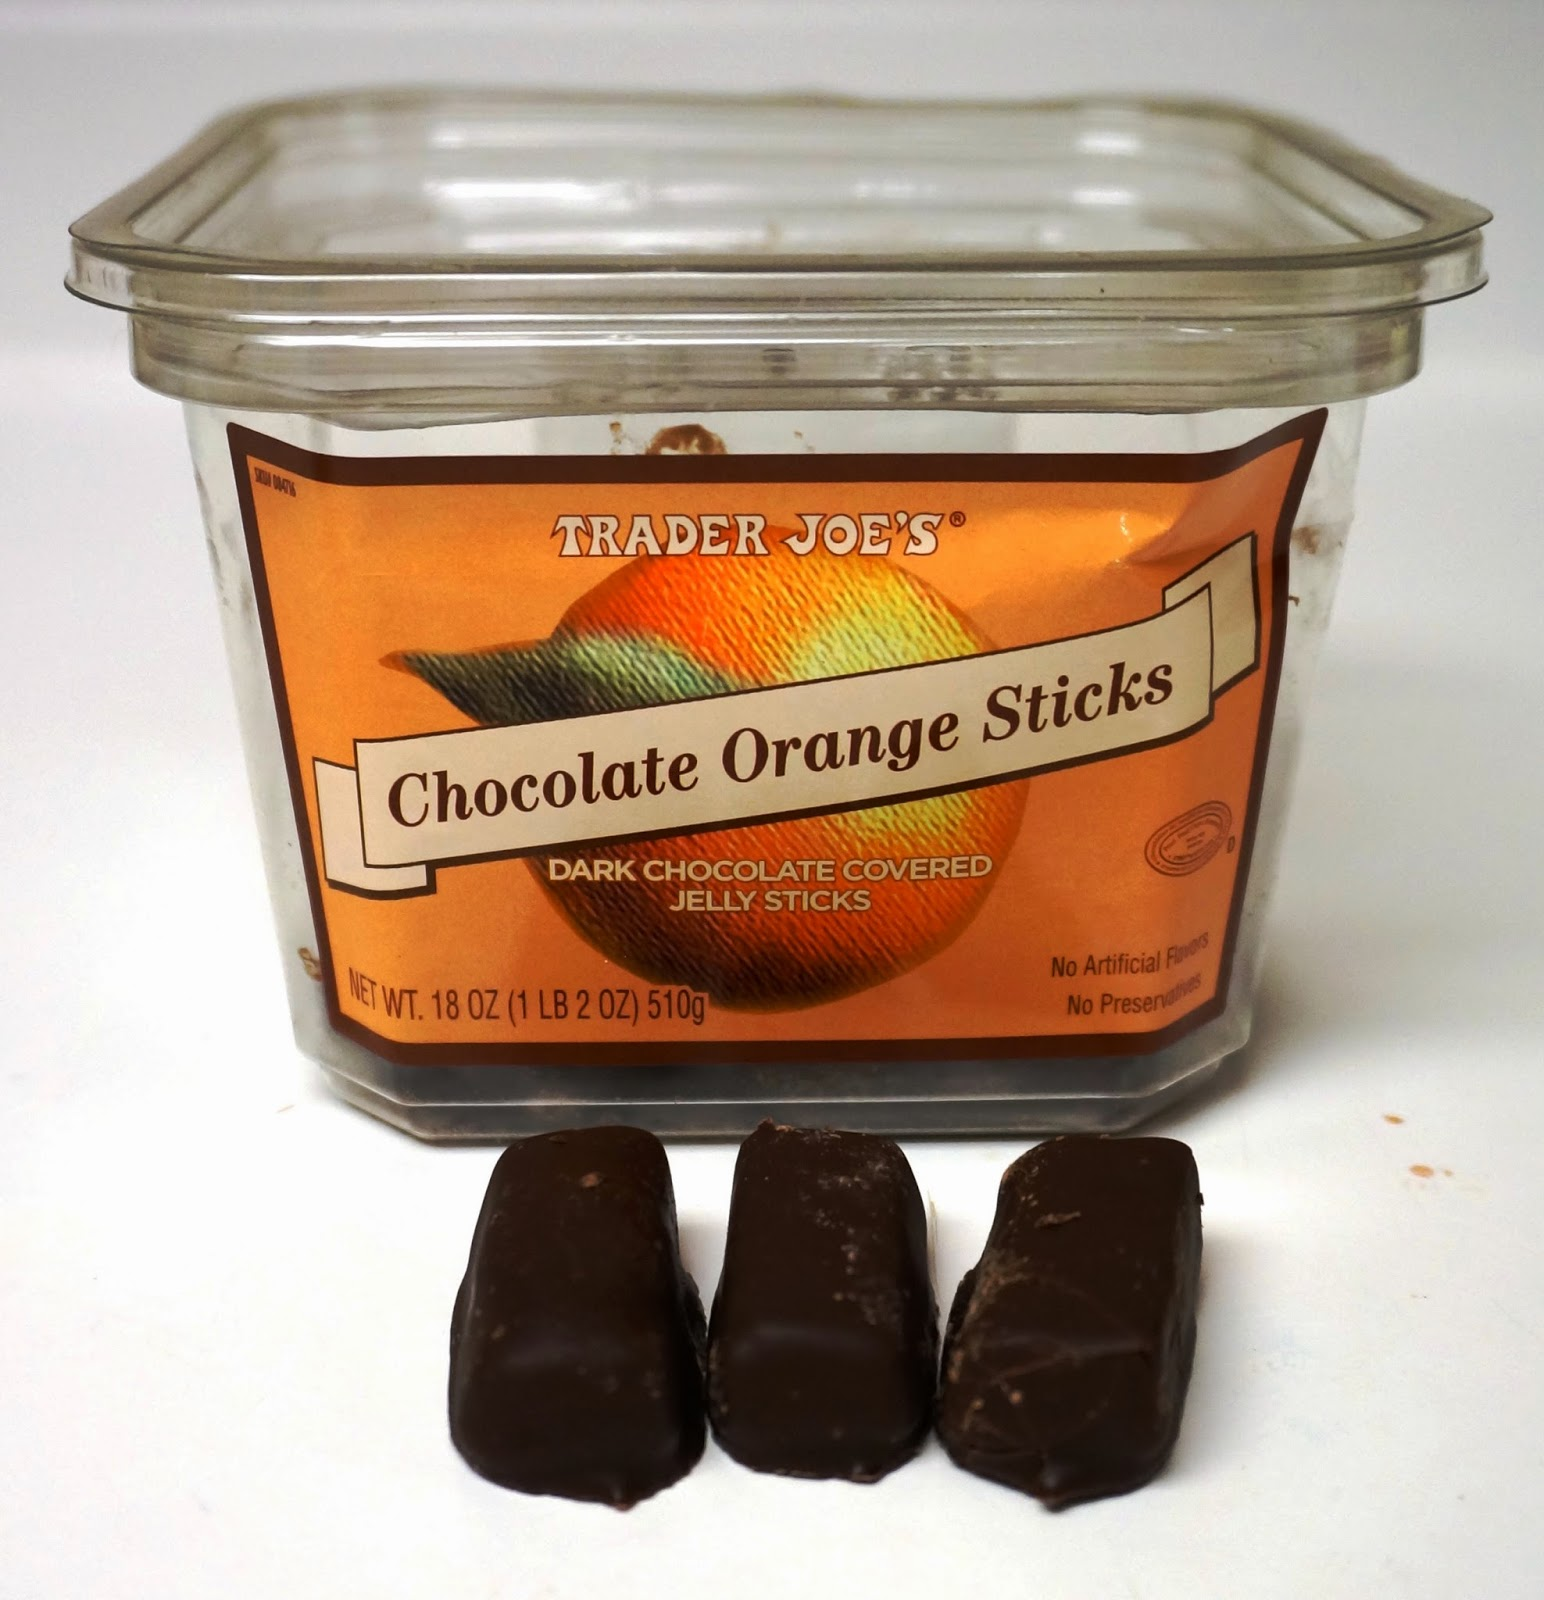 Exploring Trader Joe's: Trader Joe's Chocolate Orange Sticks